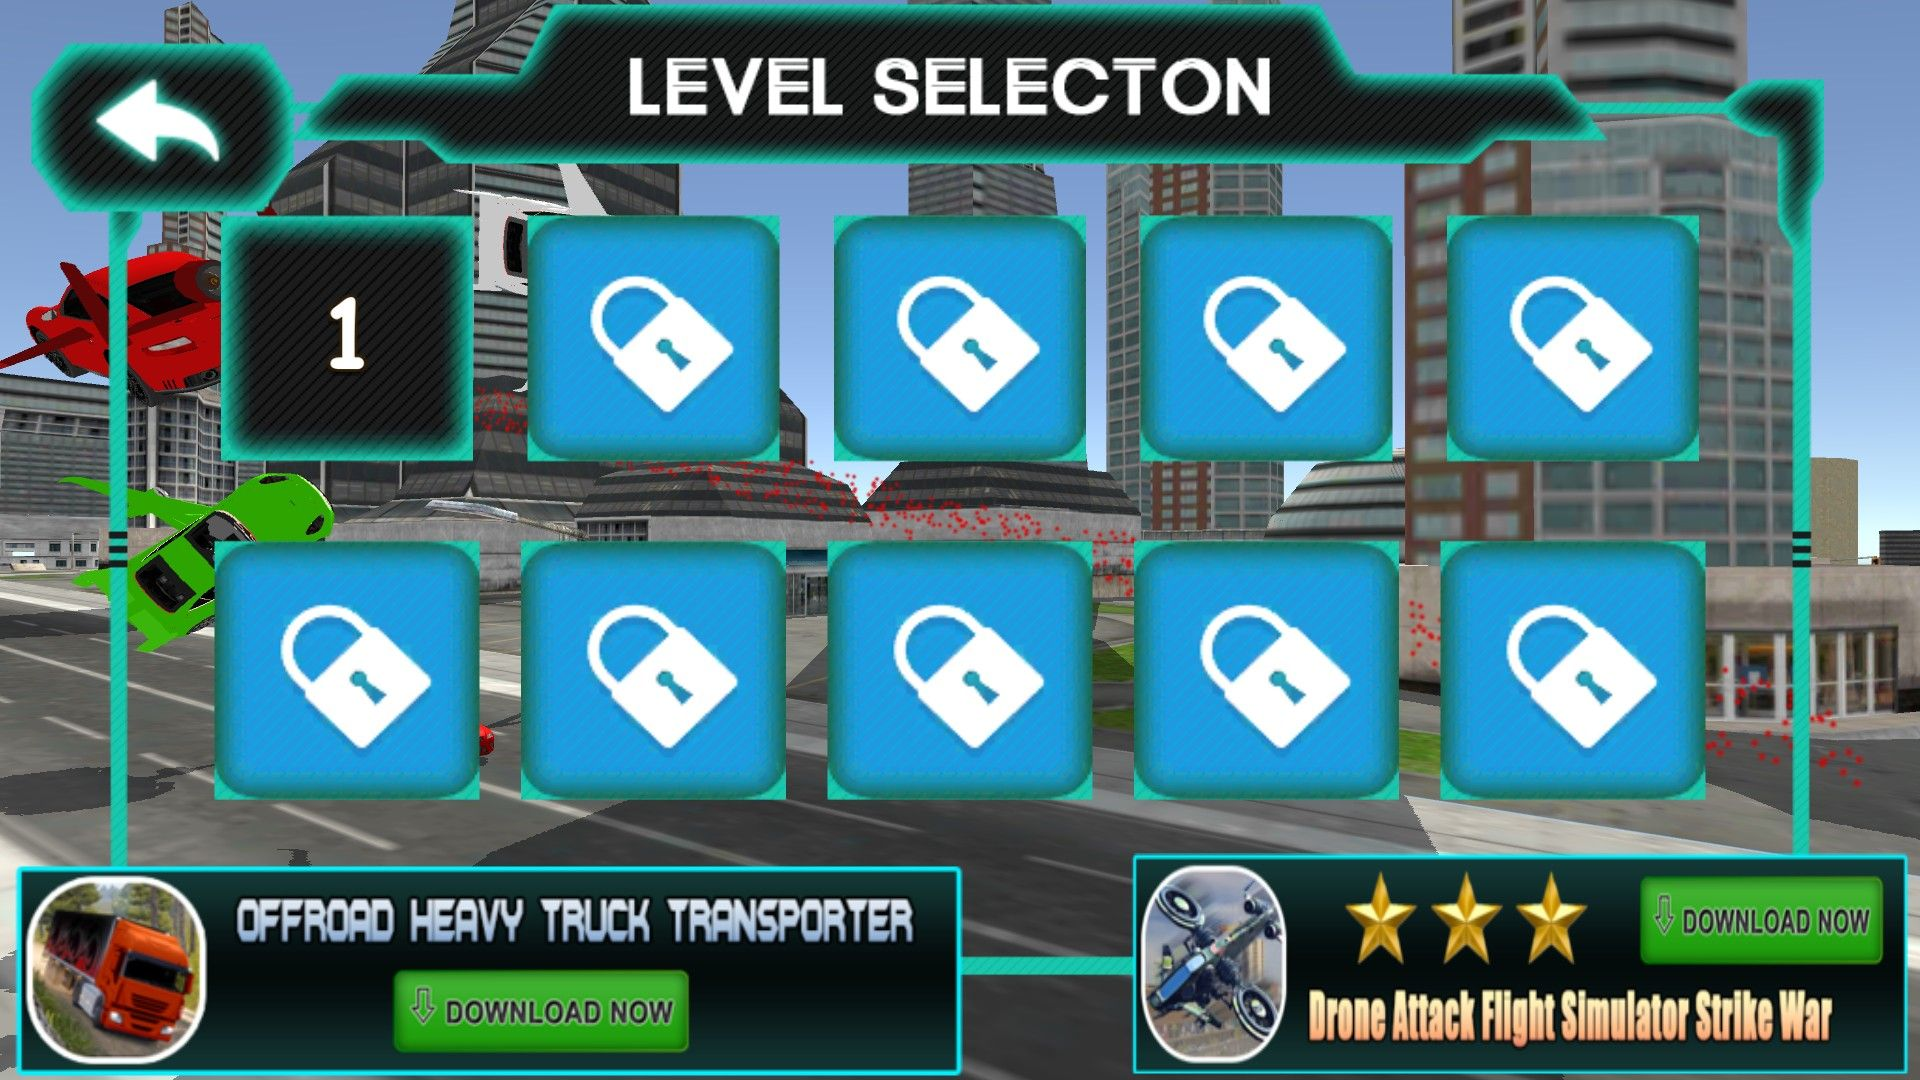 Screenshot Of Level Selection Menu From The Android Game Real